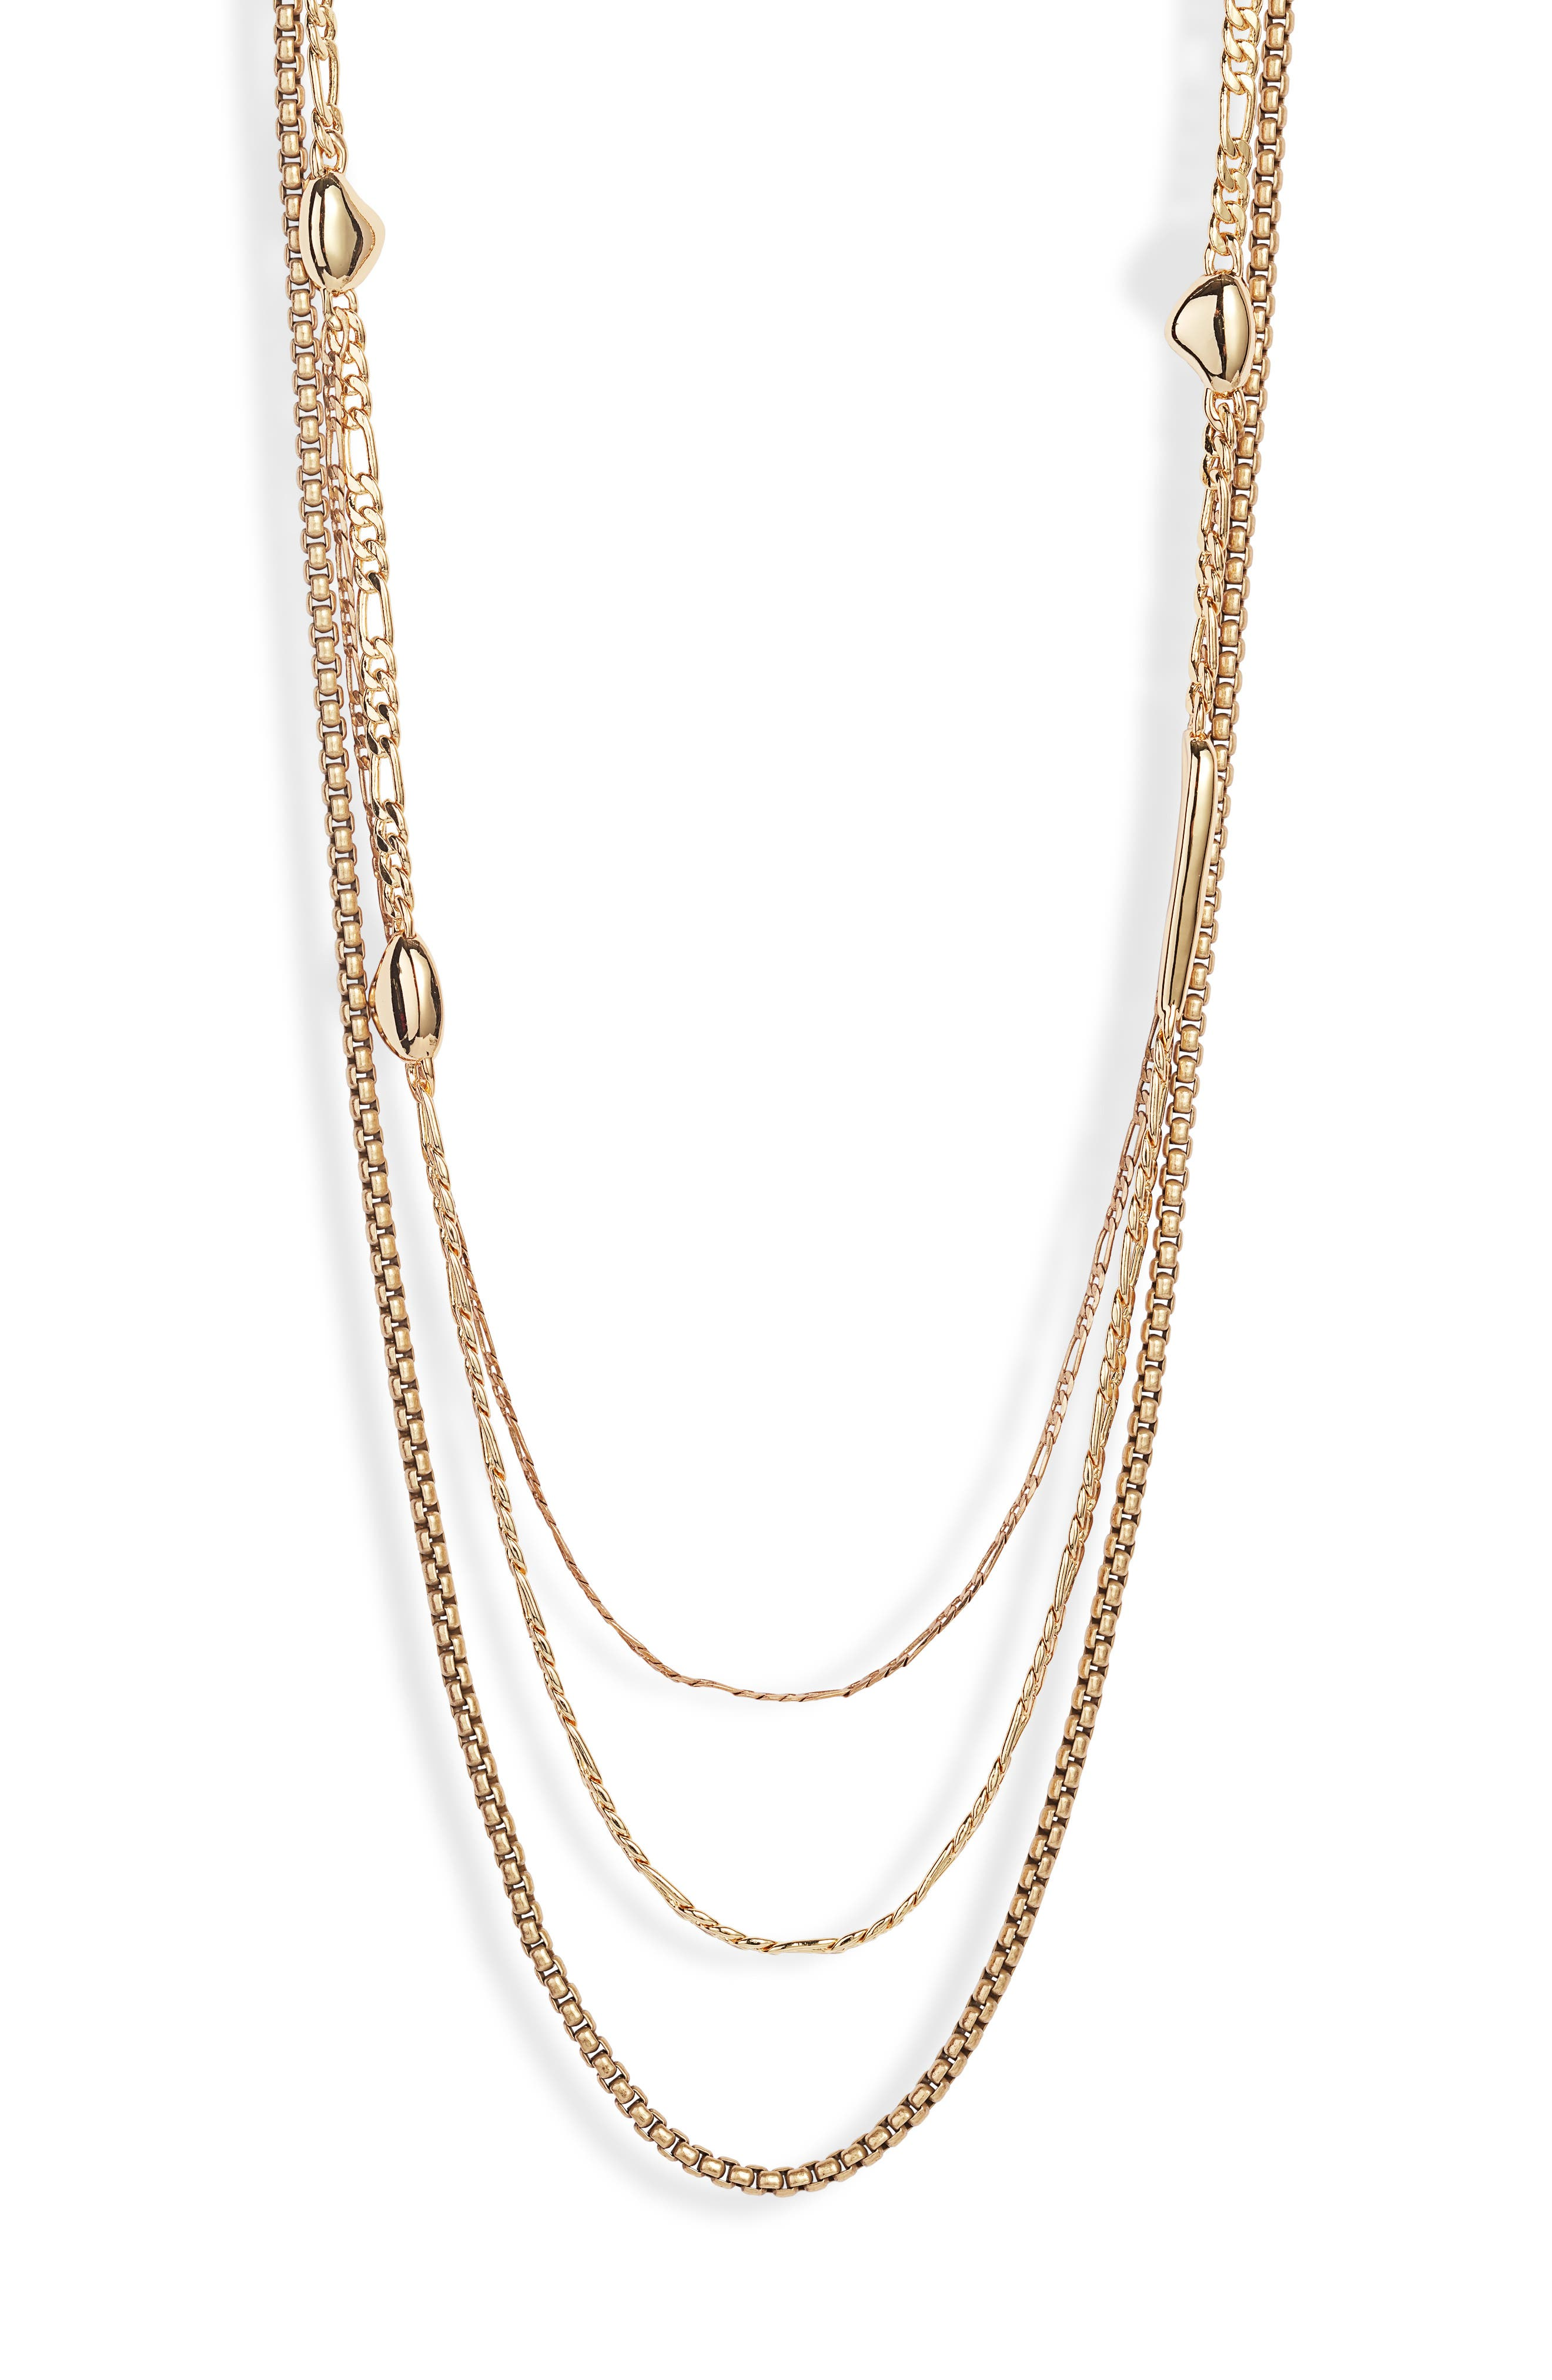 Jenny Bird Salento Layered Chain Link Necklace In High Polish Gold